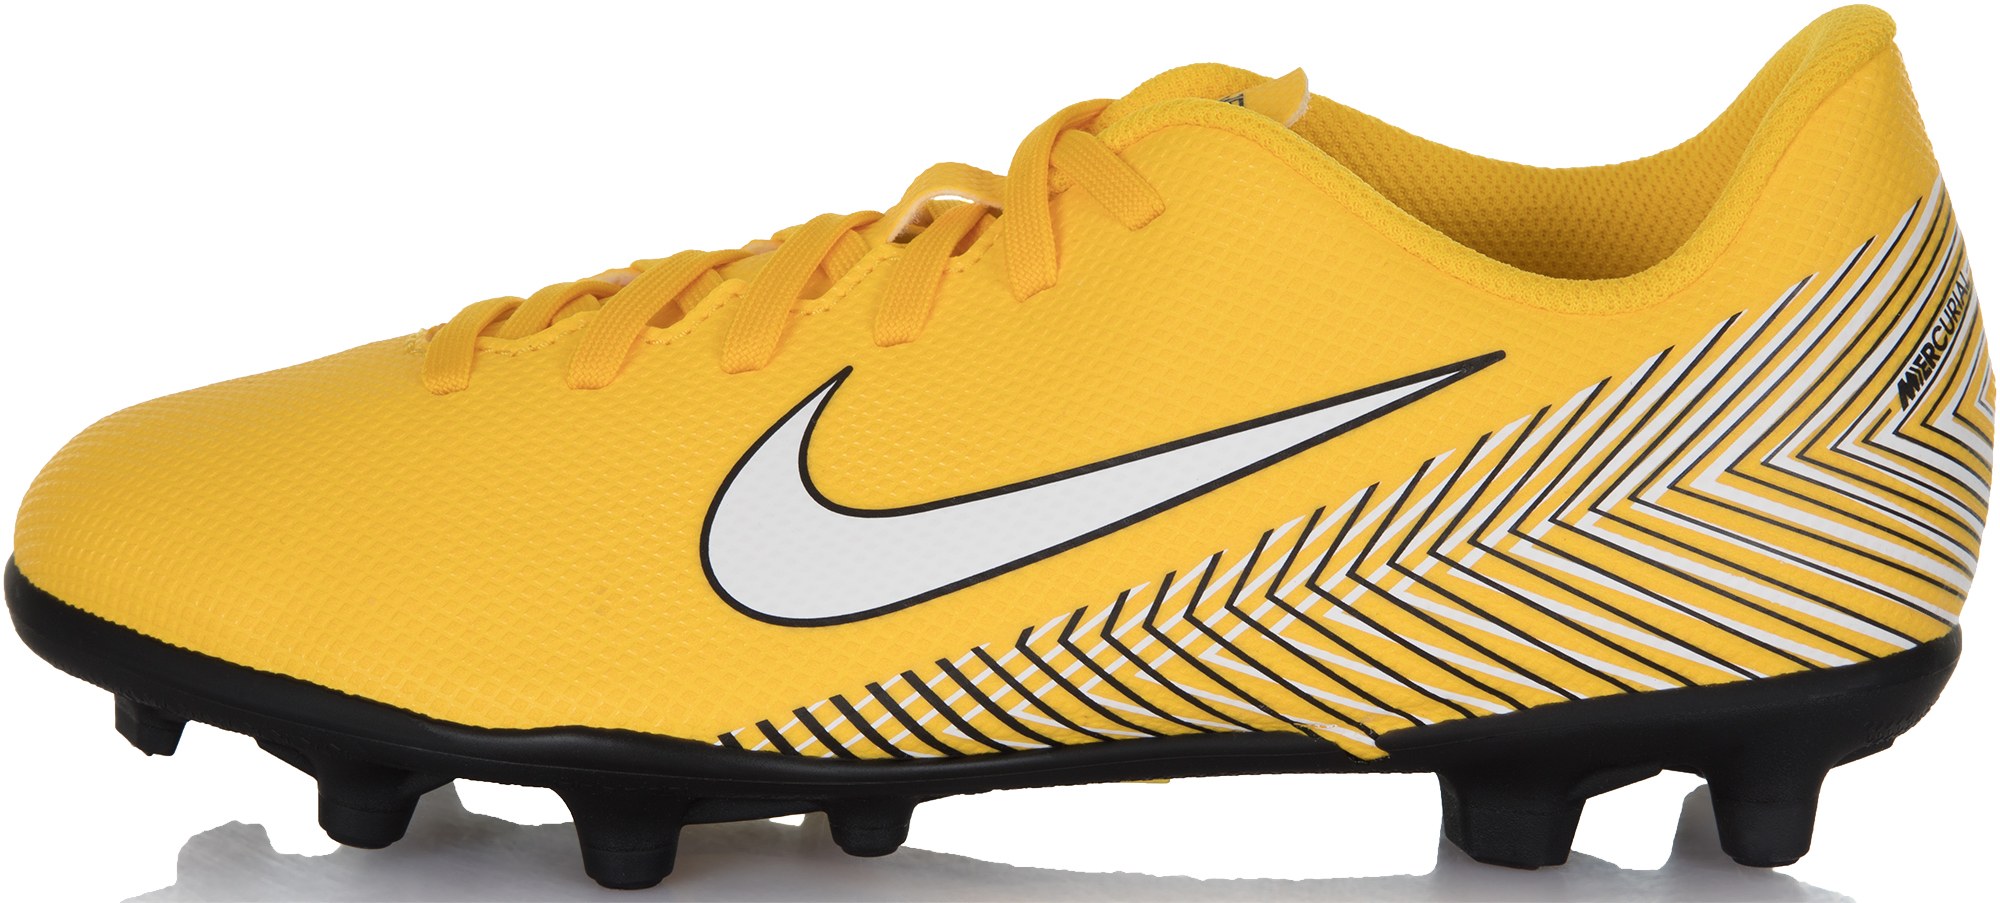 Nike Бутсы для мальчиков Nike Neymar Jr. Vapor 12 Club MG, размер 37,5 цена